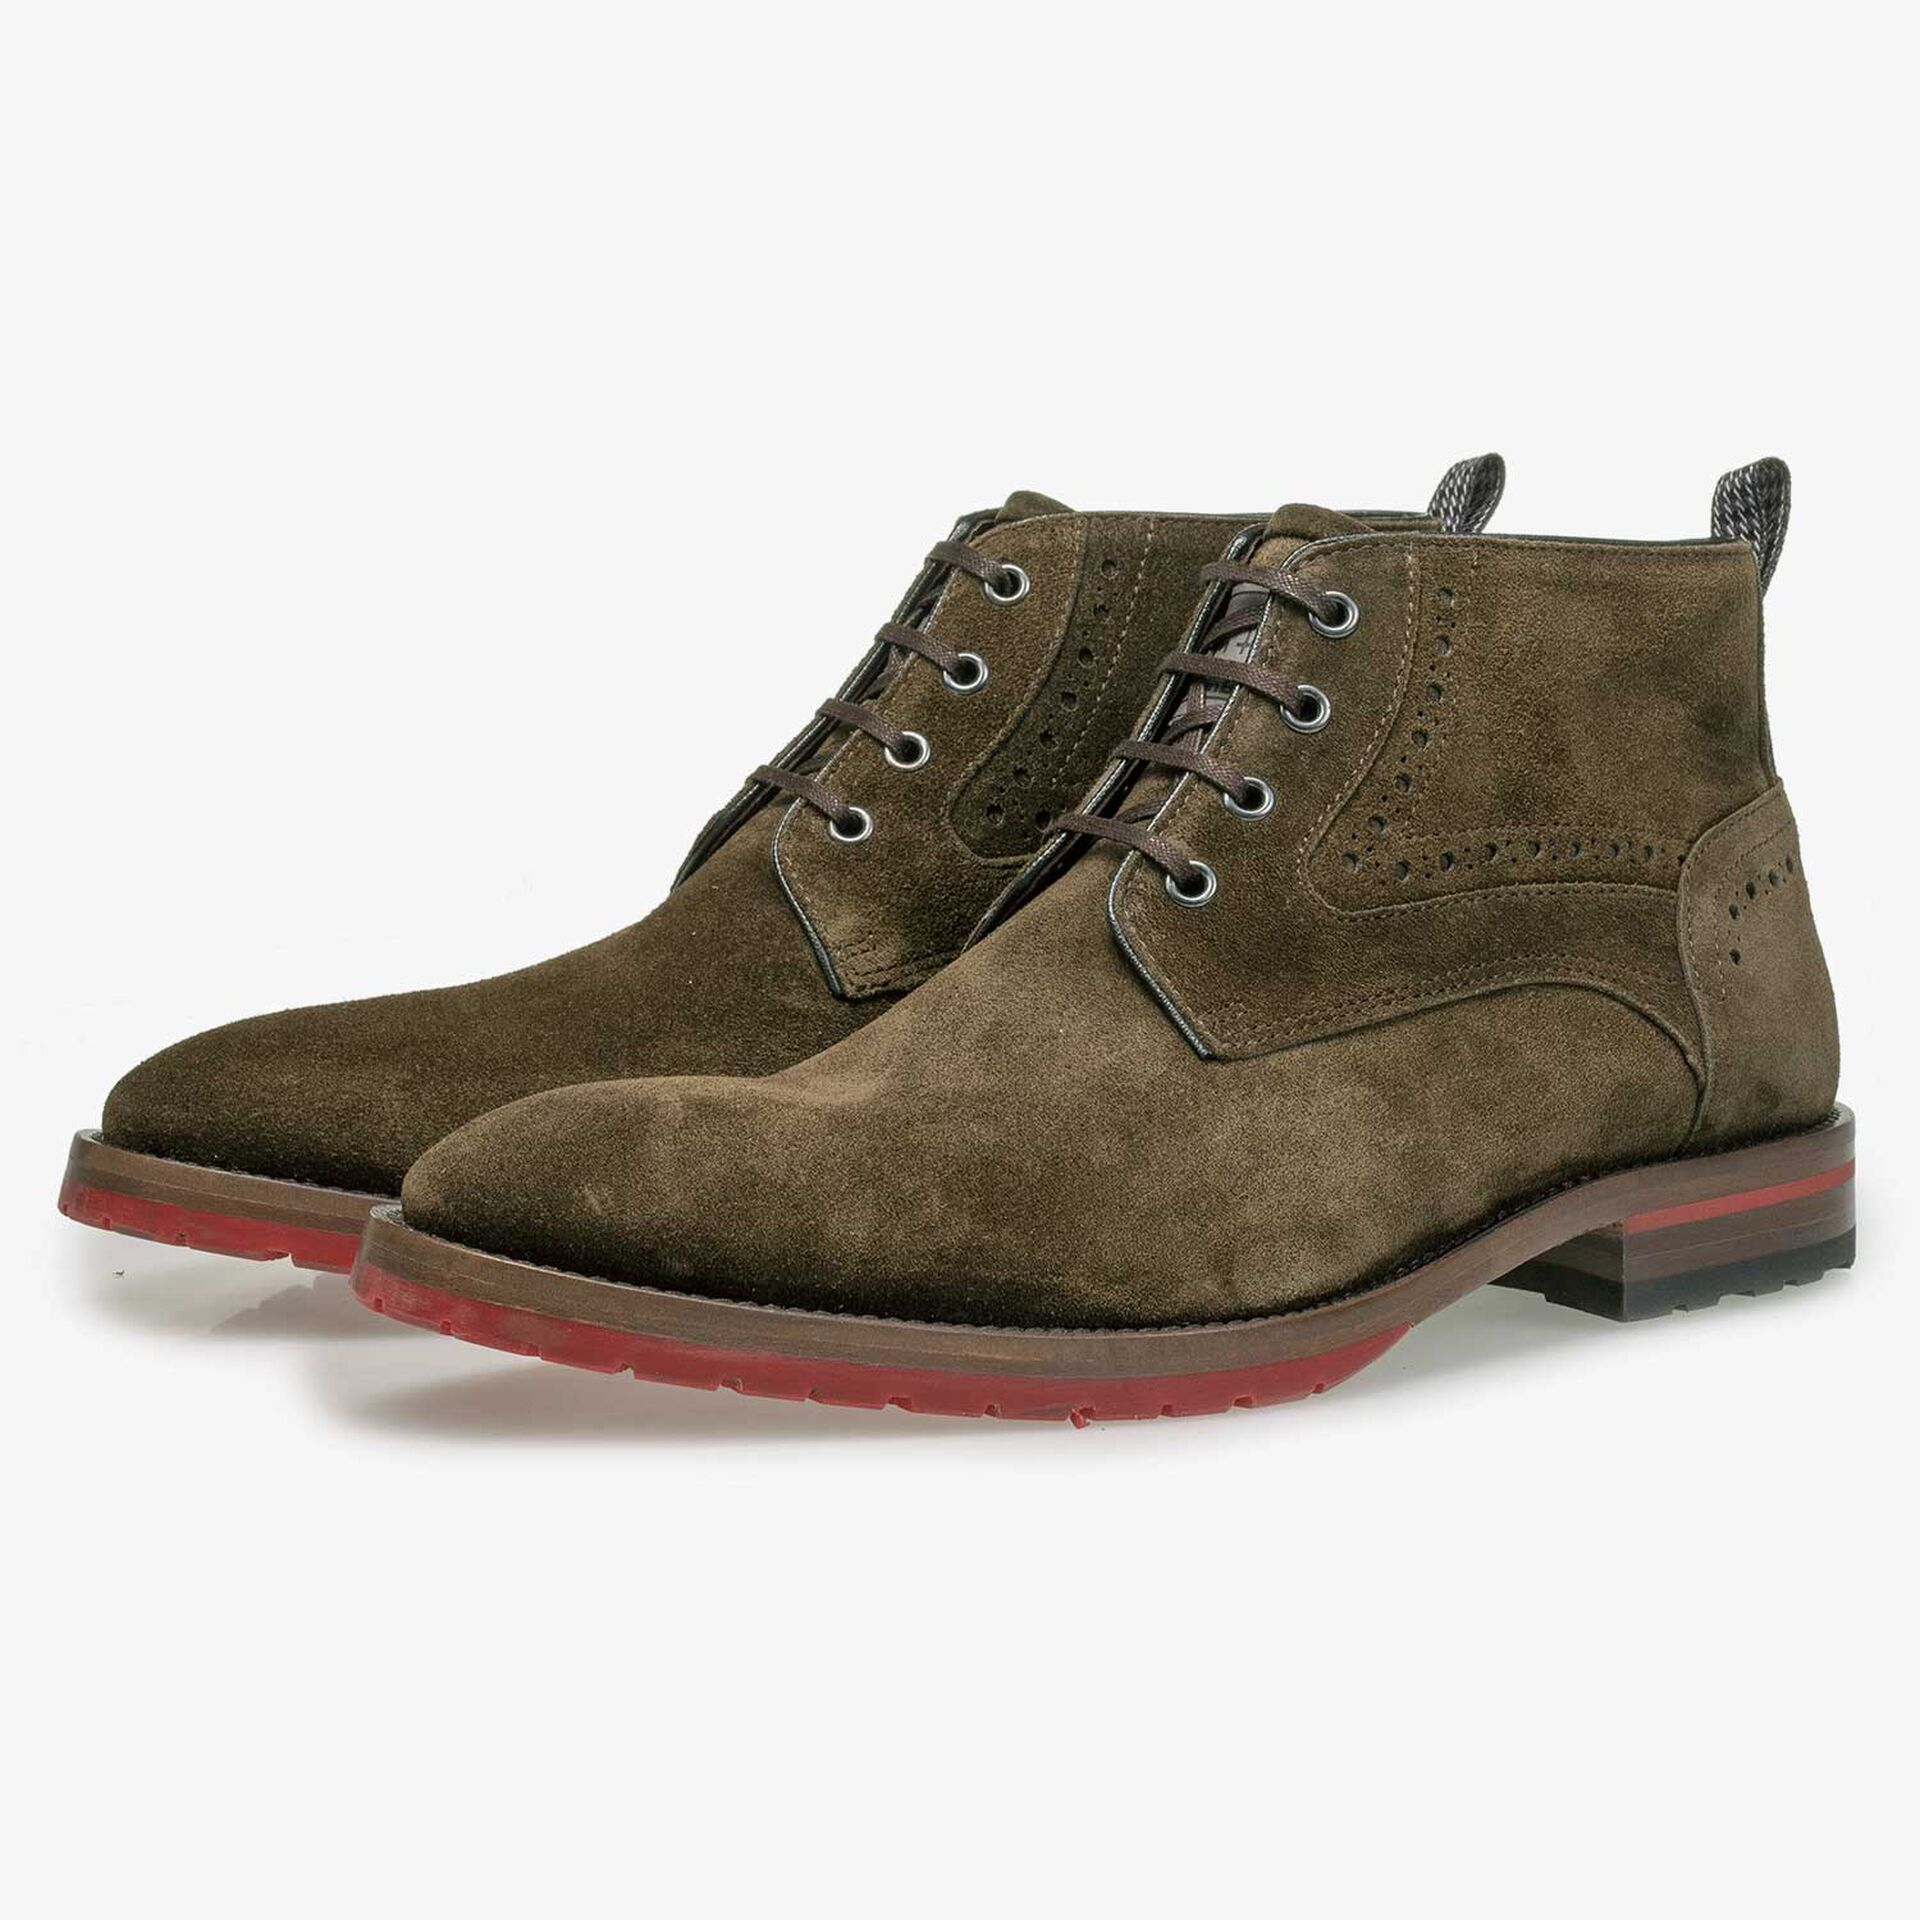 Brown/Olive green suede leather lace shoe